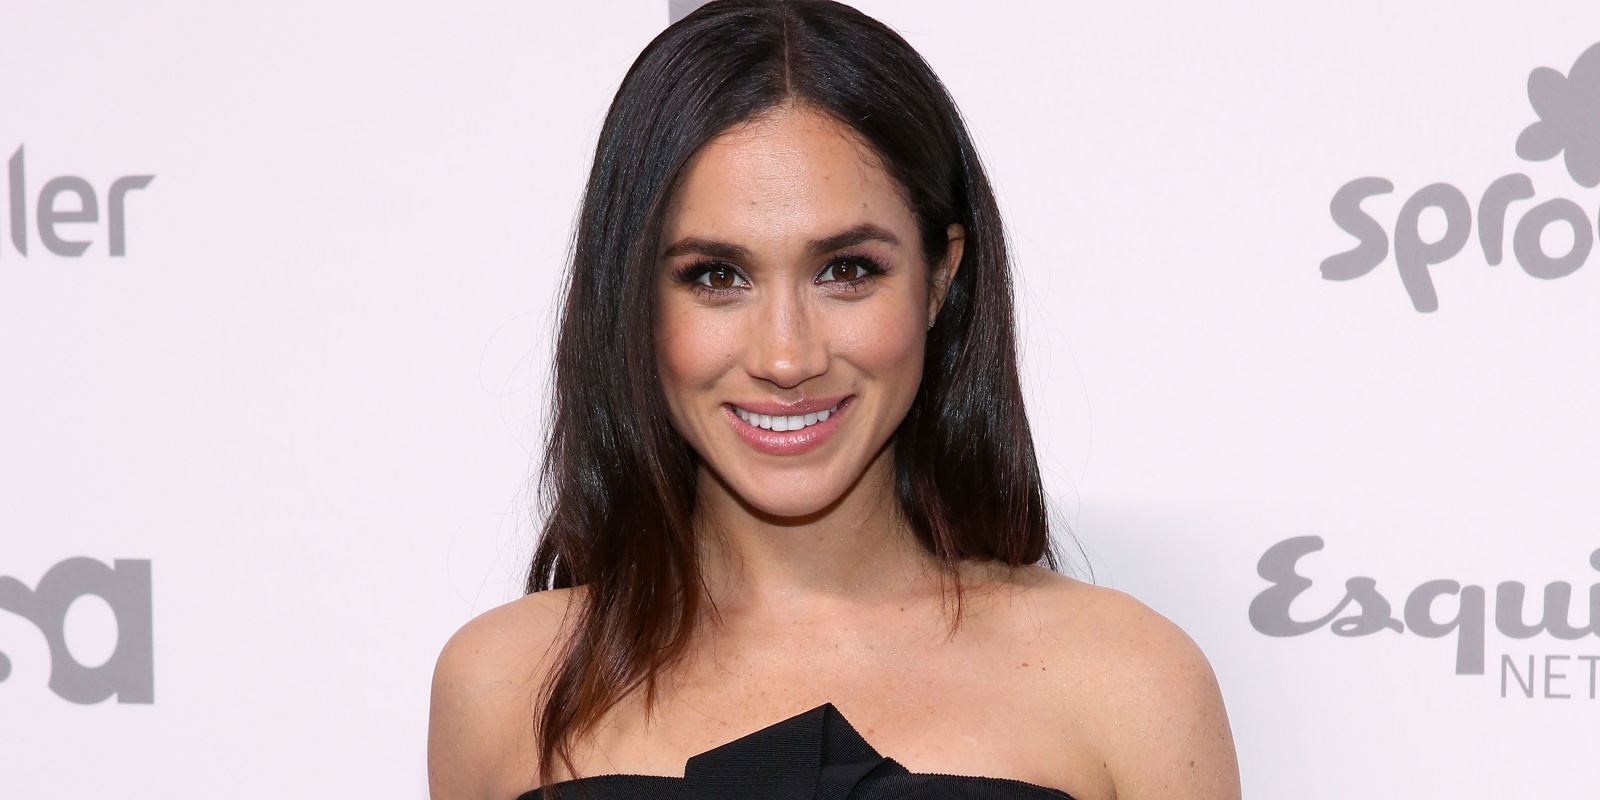 Meghan Markle's Most Memorable Suits Moment Is Pretty Darn Raunchy